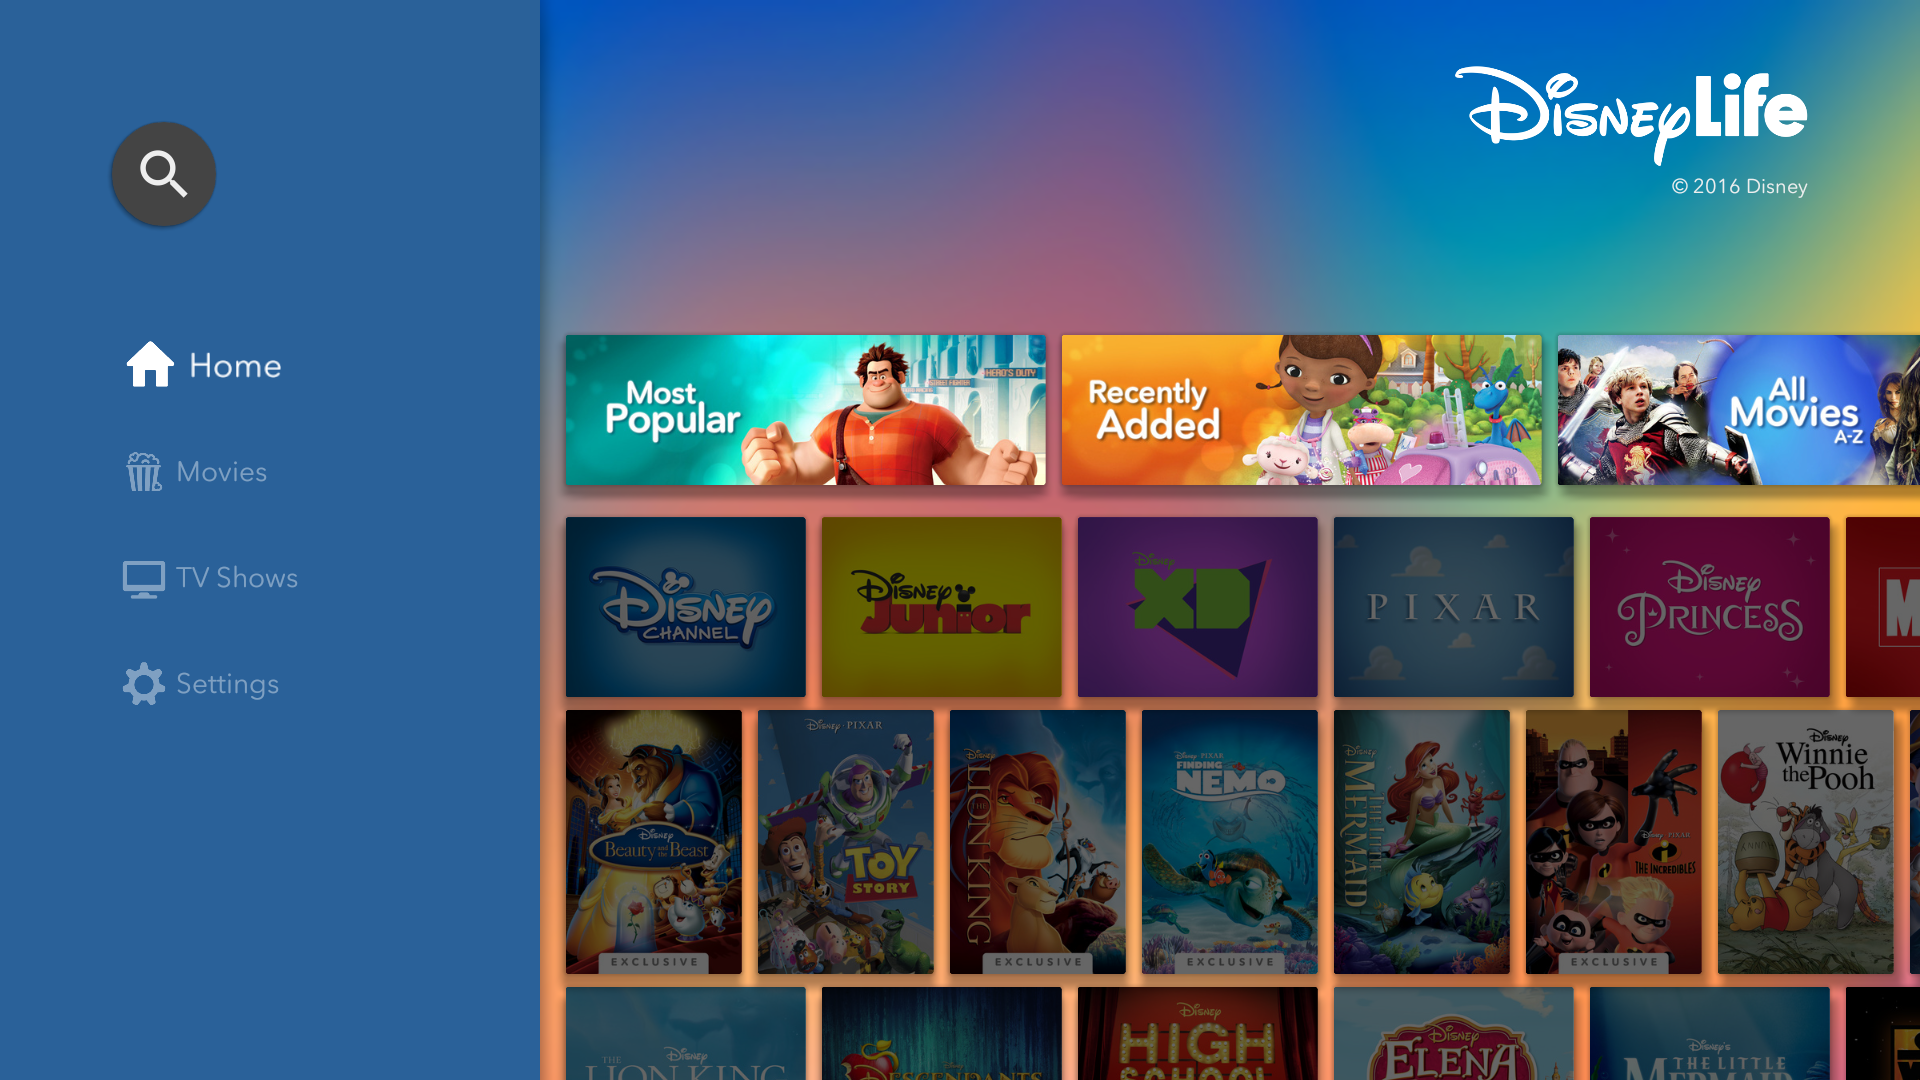 Amazon.com: DisneyLife: Watch Disney Movies, TV, Books ...